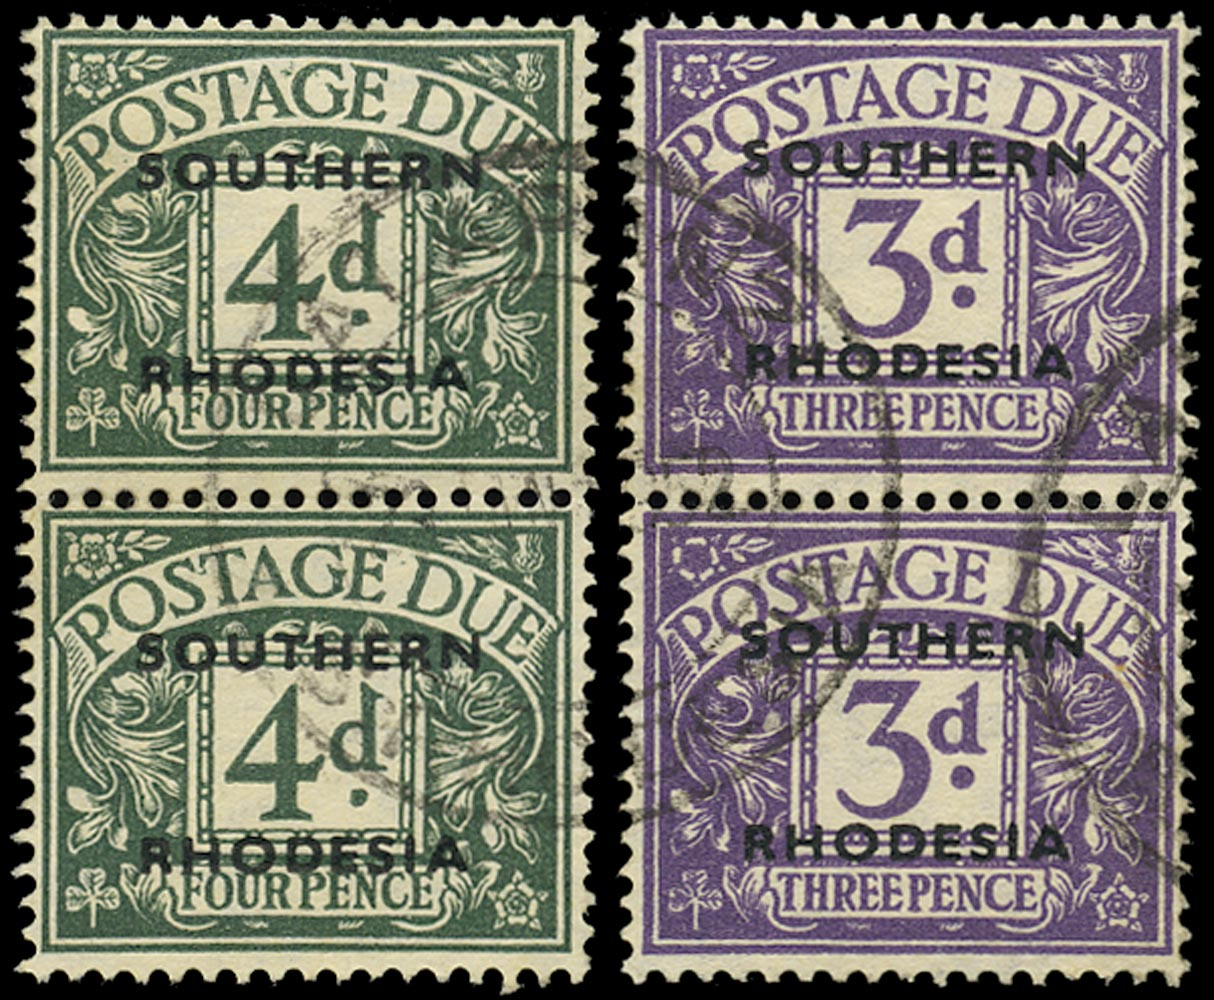 SOUTHERN RHODESIA 1951  SGD6 Postage Due 4d dull grey-green pair used at Lalapanzi